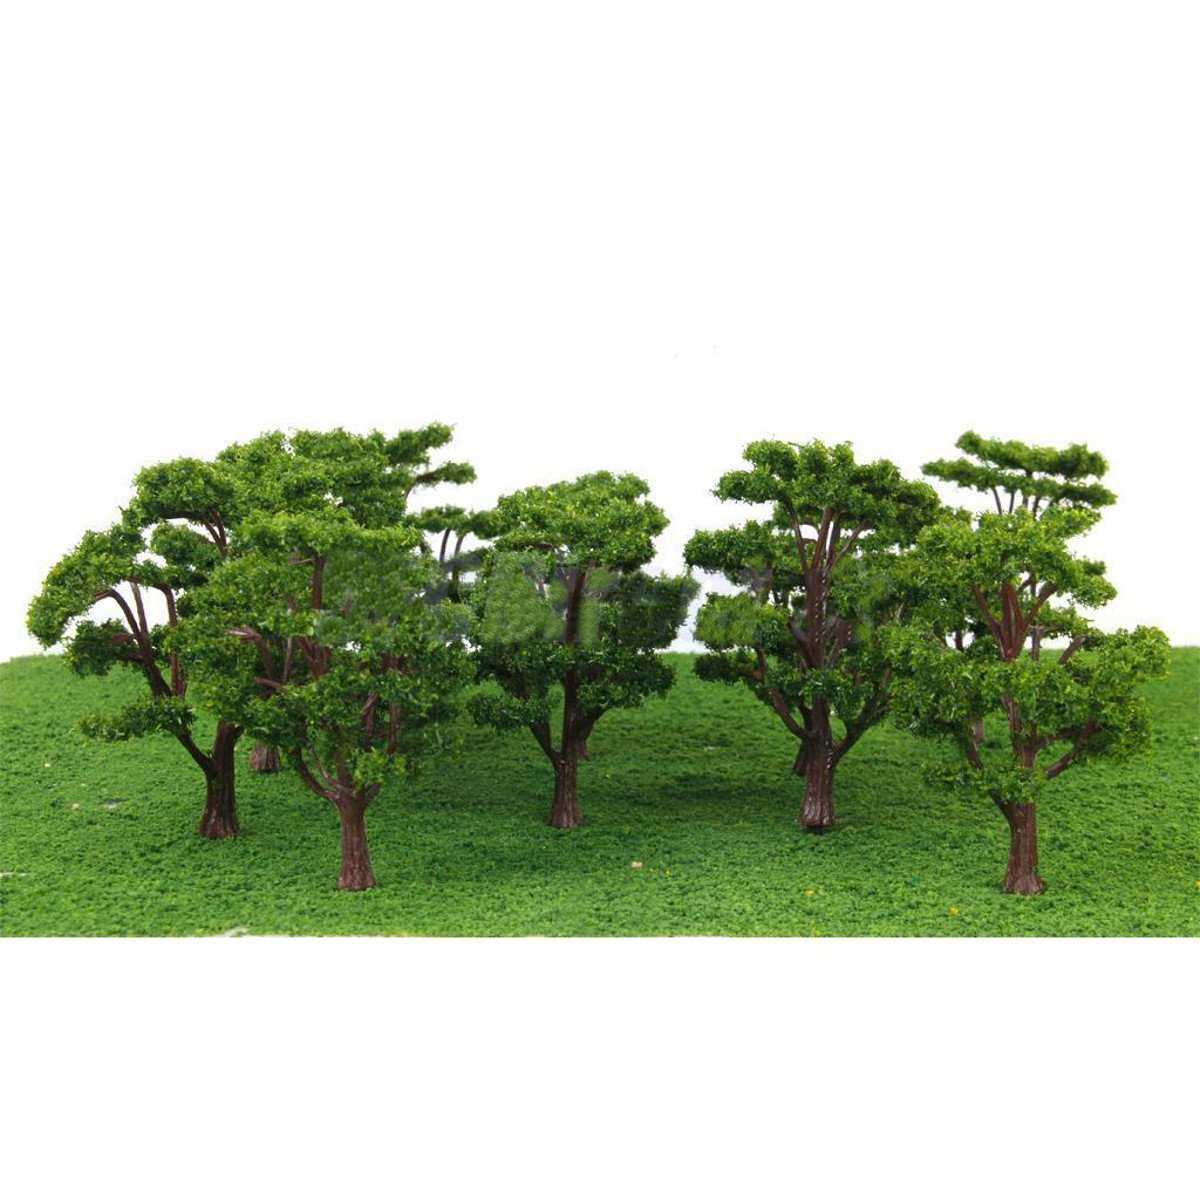 Bememo 22 Pieces Model Trees 1 18 - 6 29 inch Mixed Model Tree Train